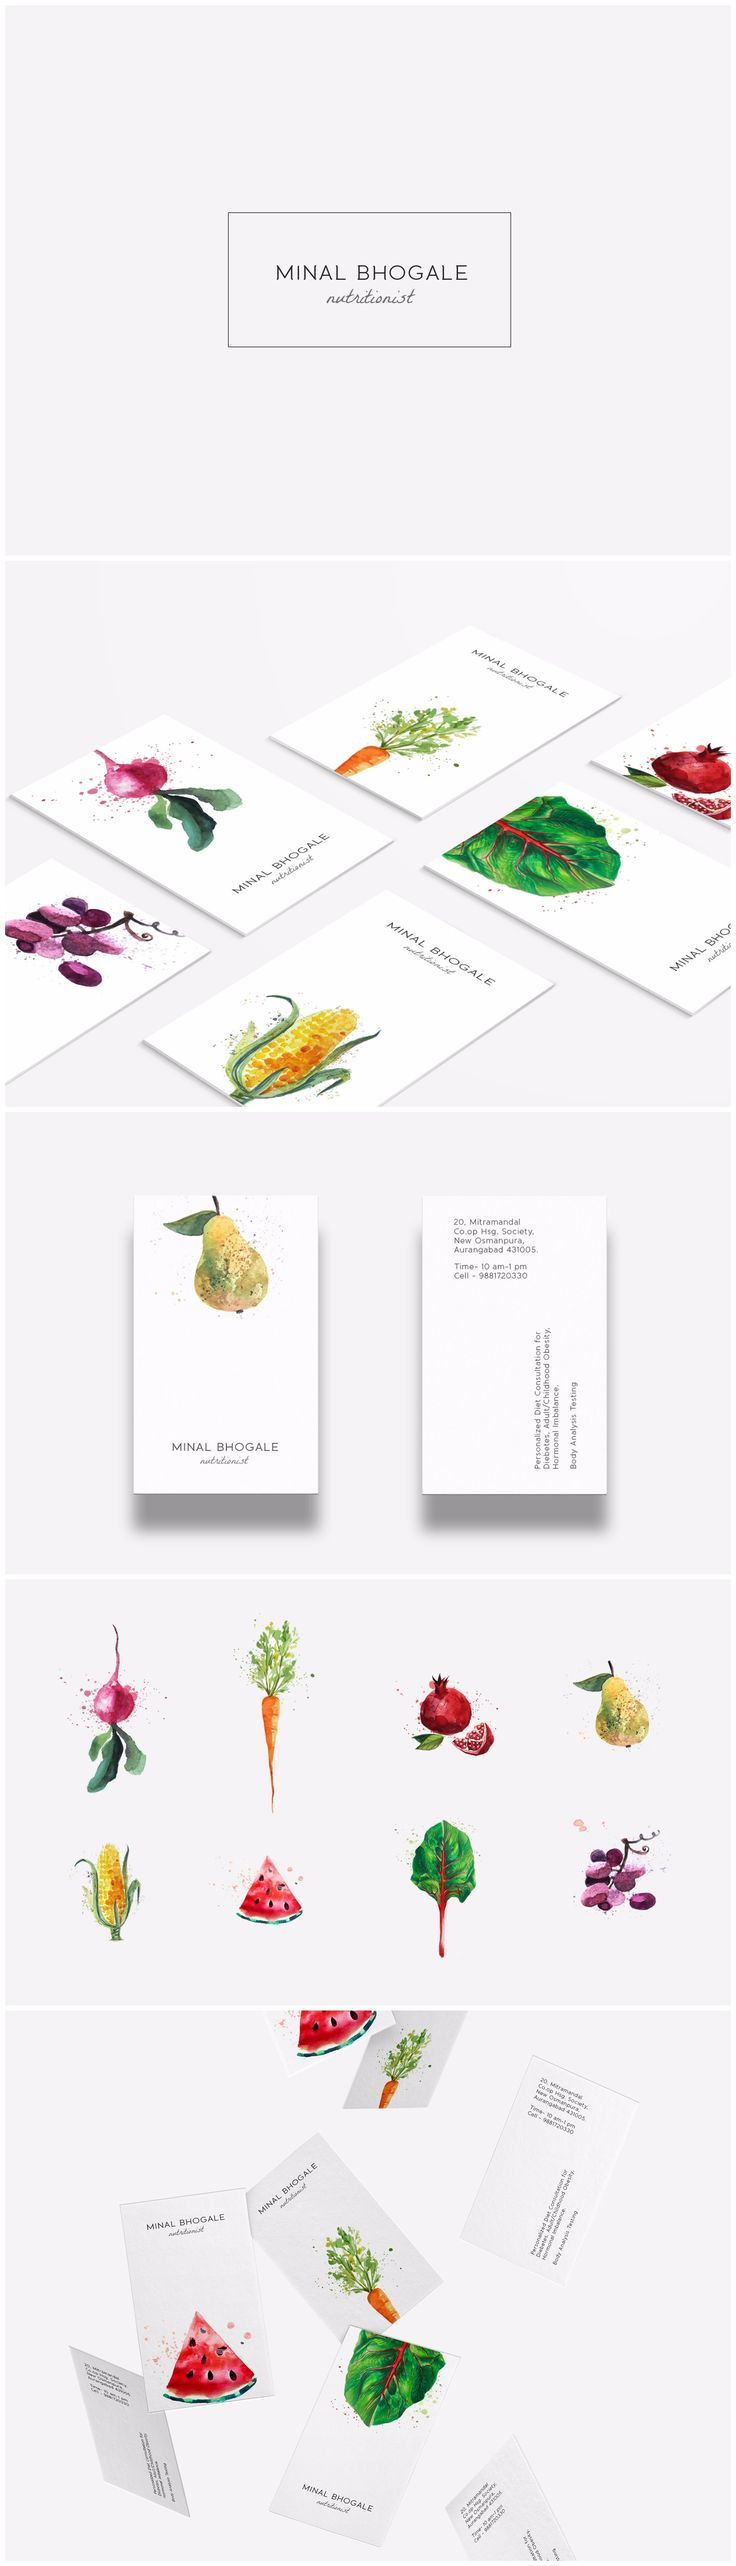 Nutritionist Brand identity design ~ Minal Bhogale is an Aurangabad based Dietician & Nutritionist offering personalized diet consultation for diabetes, hormonal imbalance, child/adult obesity. We designed an identity for her that would promote fitness, freshness and healthy food habits.